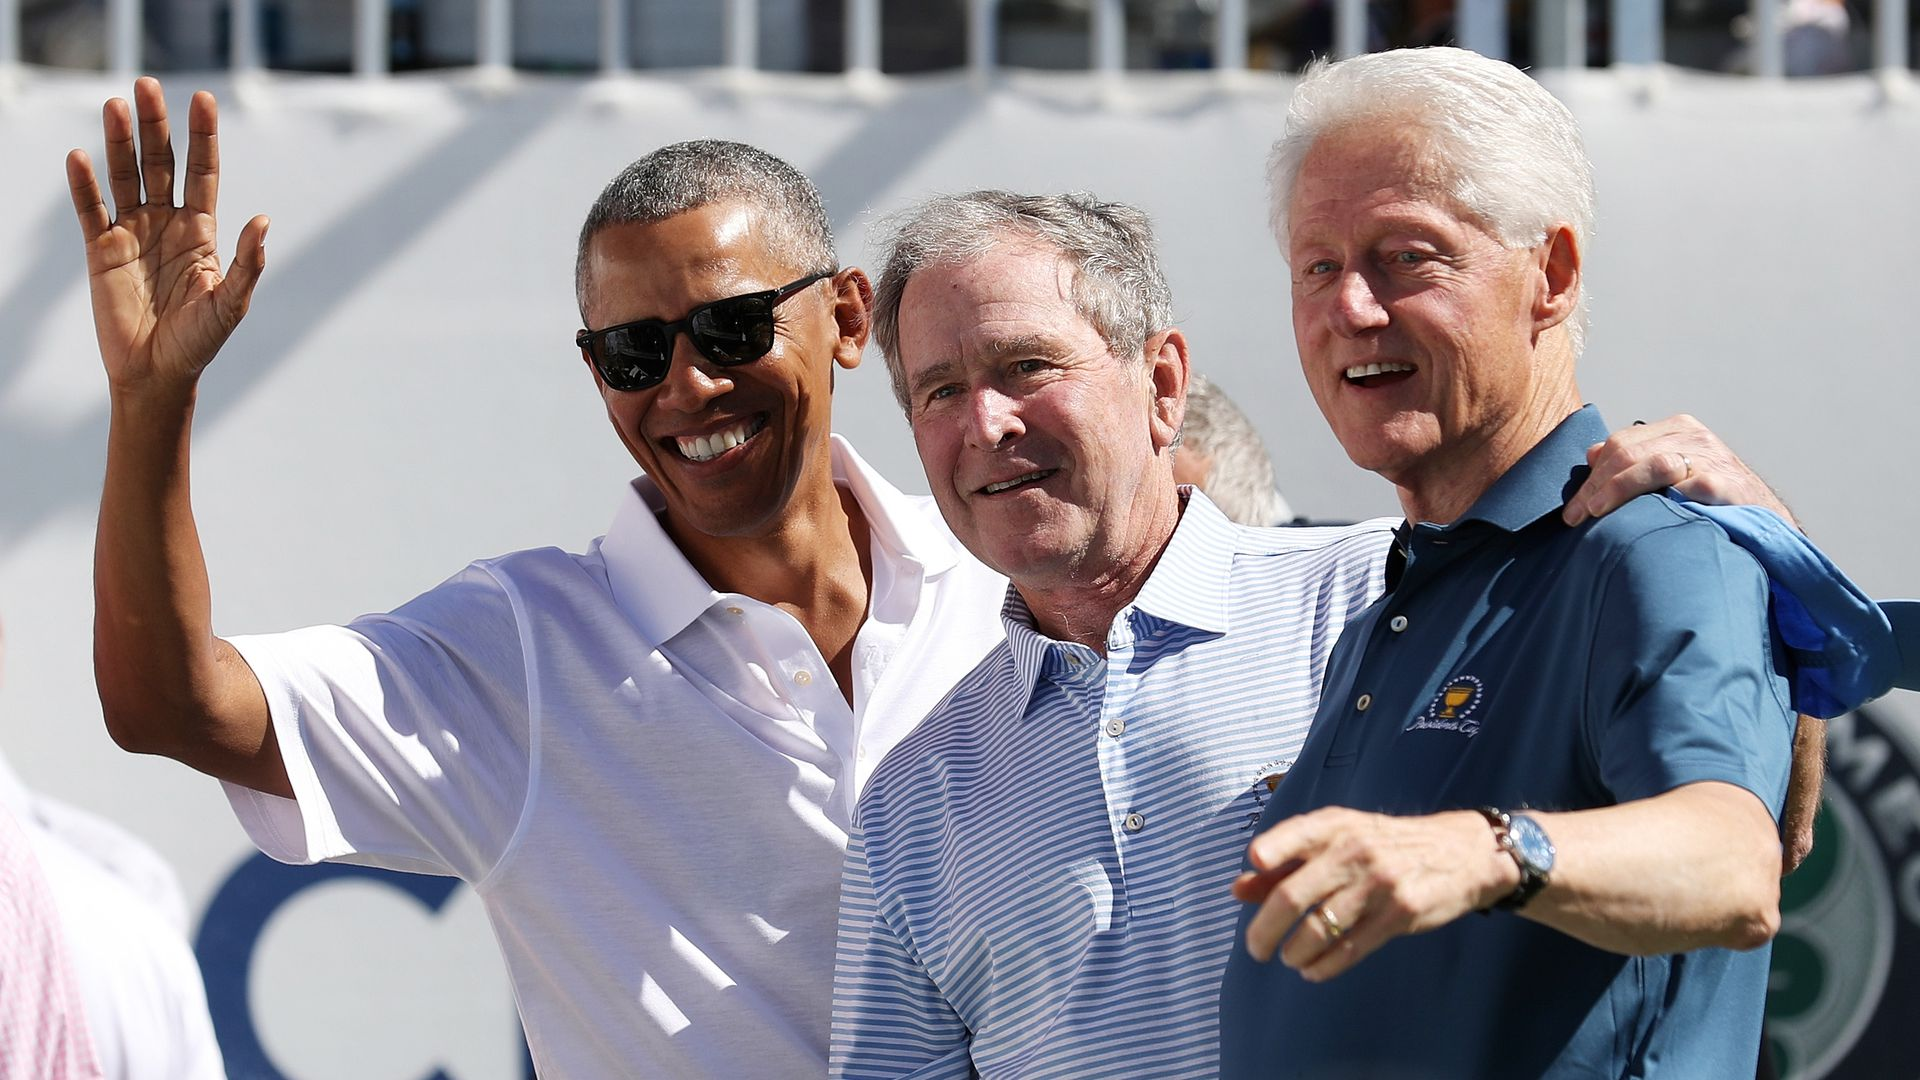 Obama, Bush, Clinton may take COVID-19 vaccine on TV to prove safety - Axios